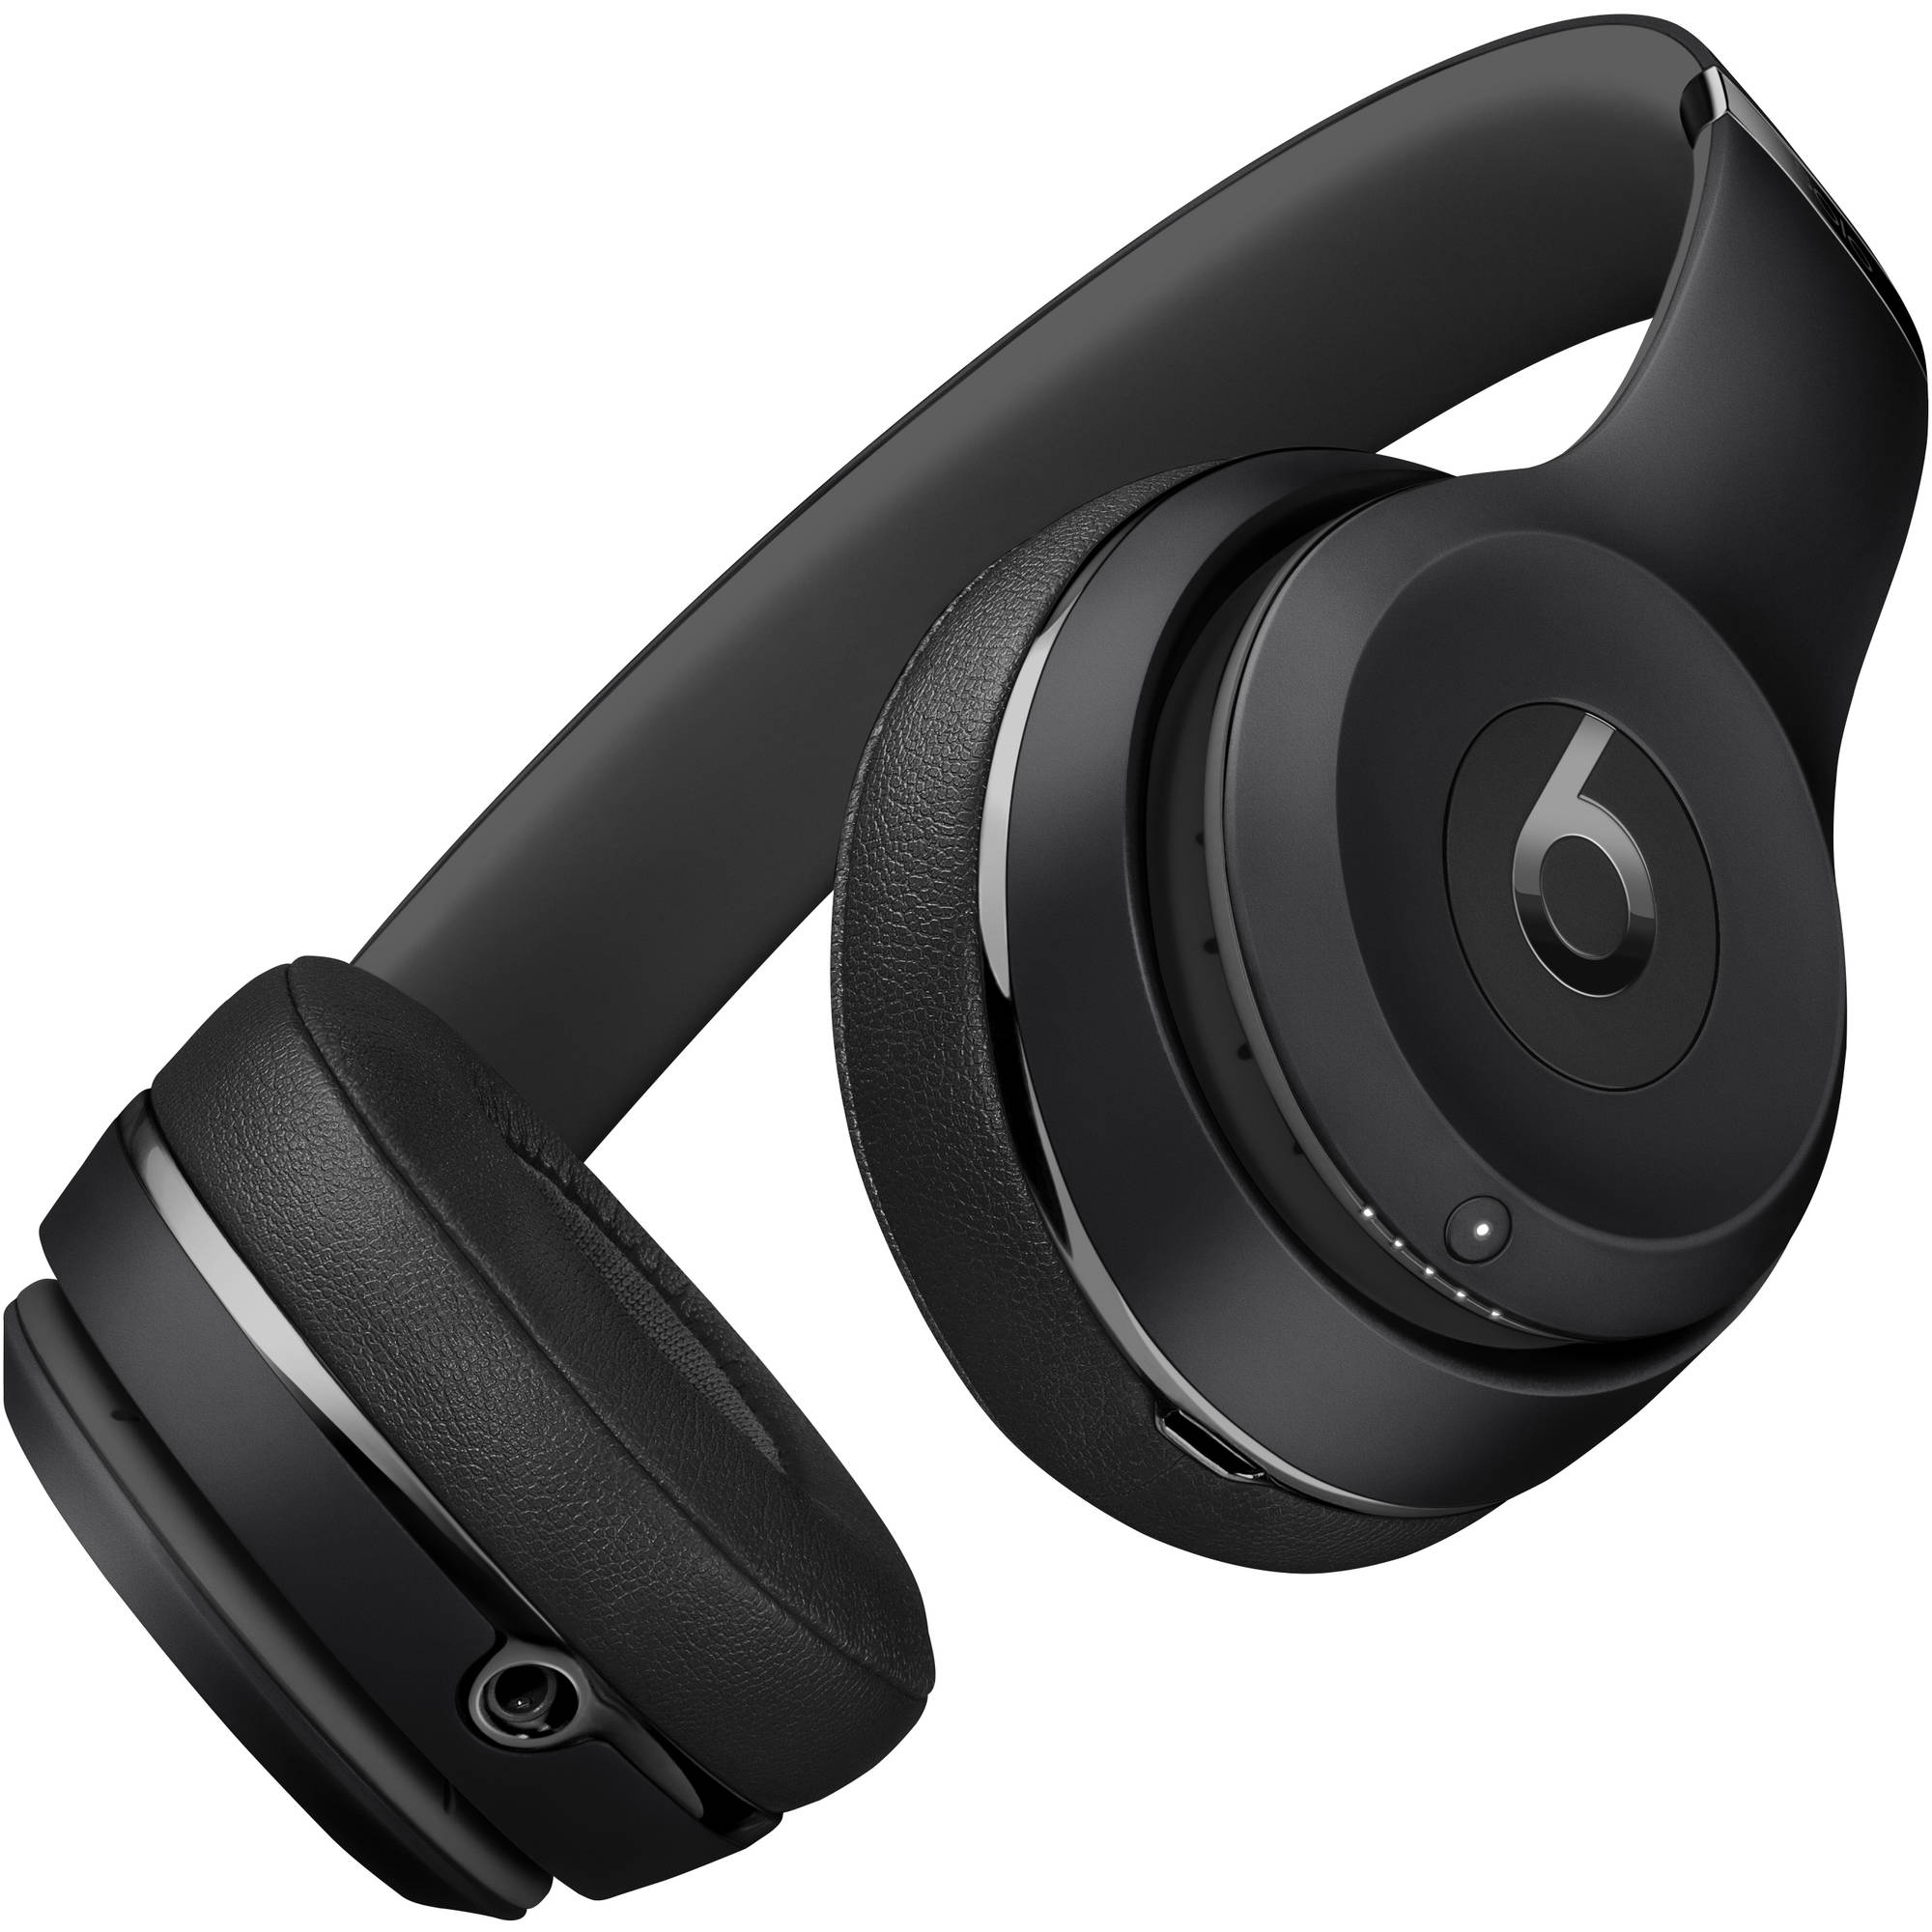 Certified Refurbished Beats Solo3 Wireless On Ear Headphones Walmart Com Walmart Com